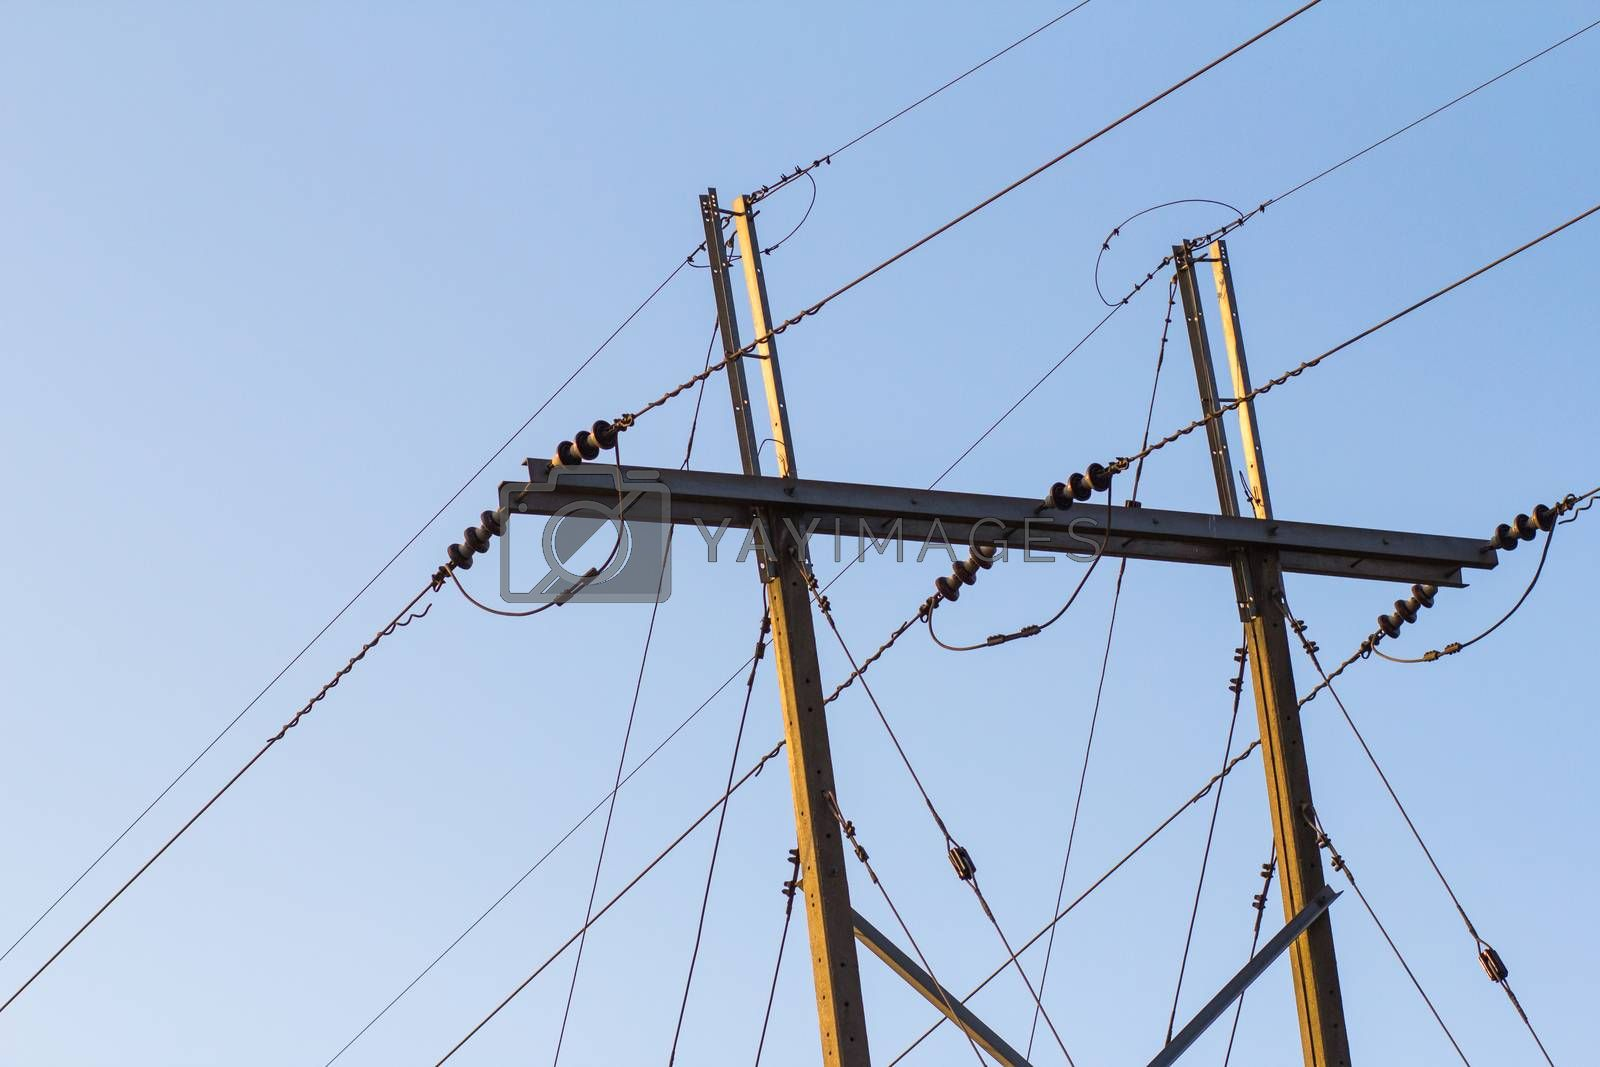 Royalty free image of electricity post on a mountain in Thailand by kritsada1992